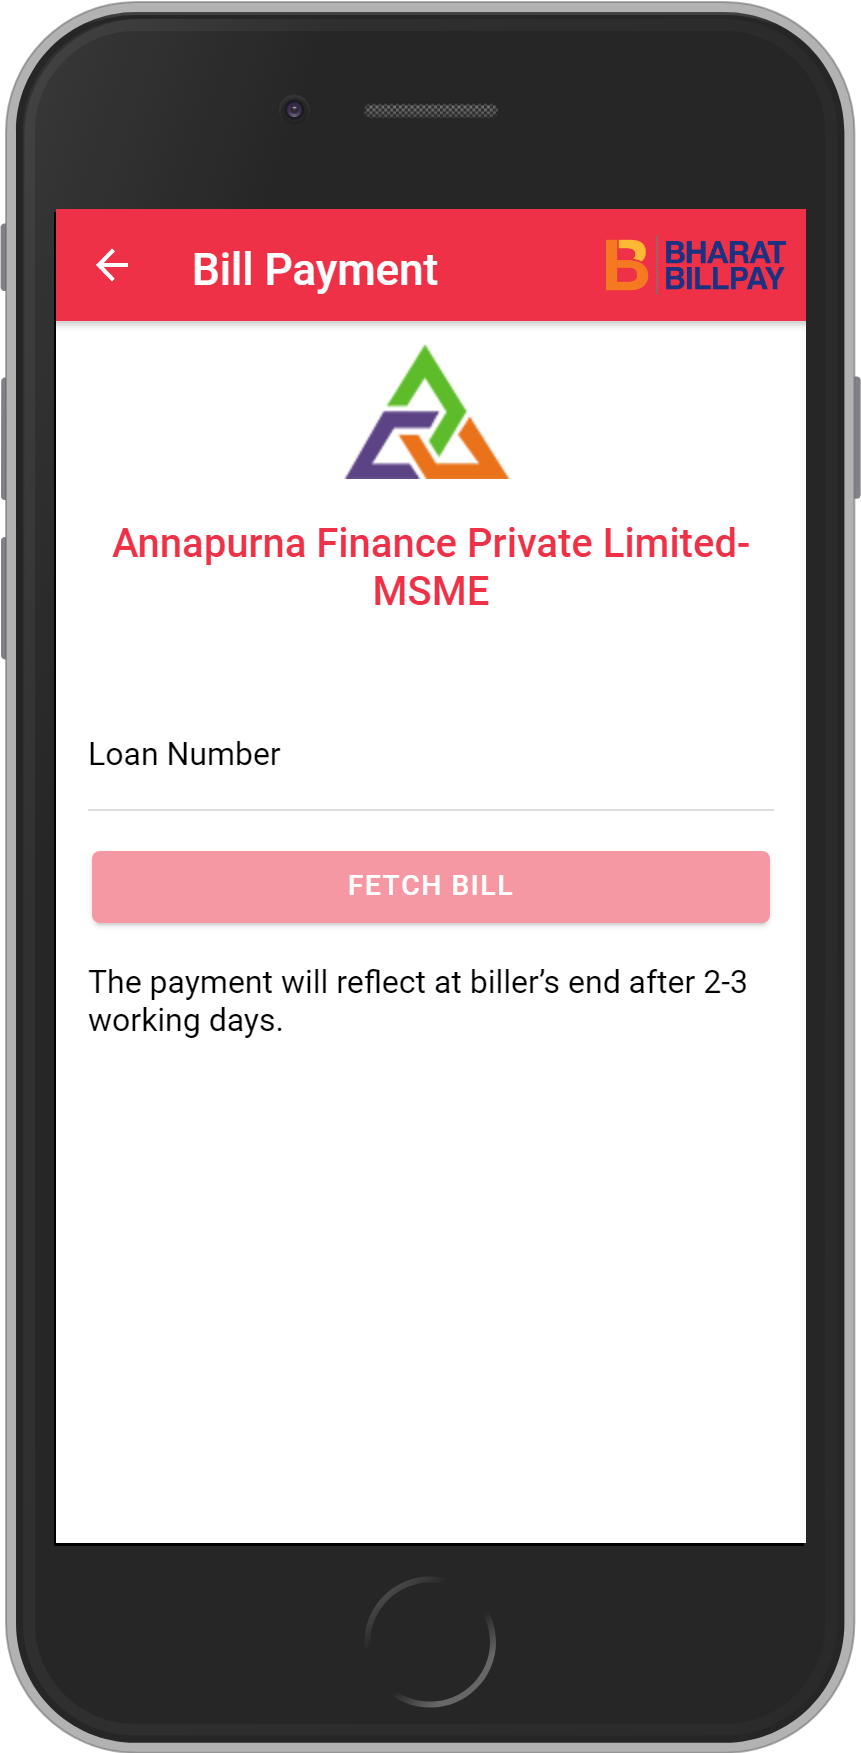 Get UNLIMITED <b>0.1%</b> CASHBACK on Annapurna Finance Private Limited-MSME Loan Payment.